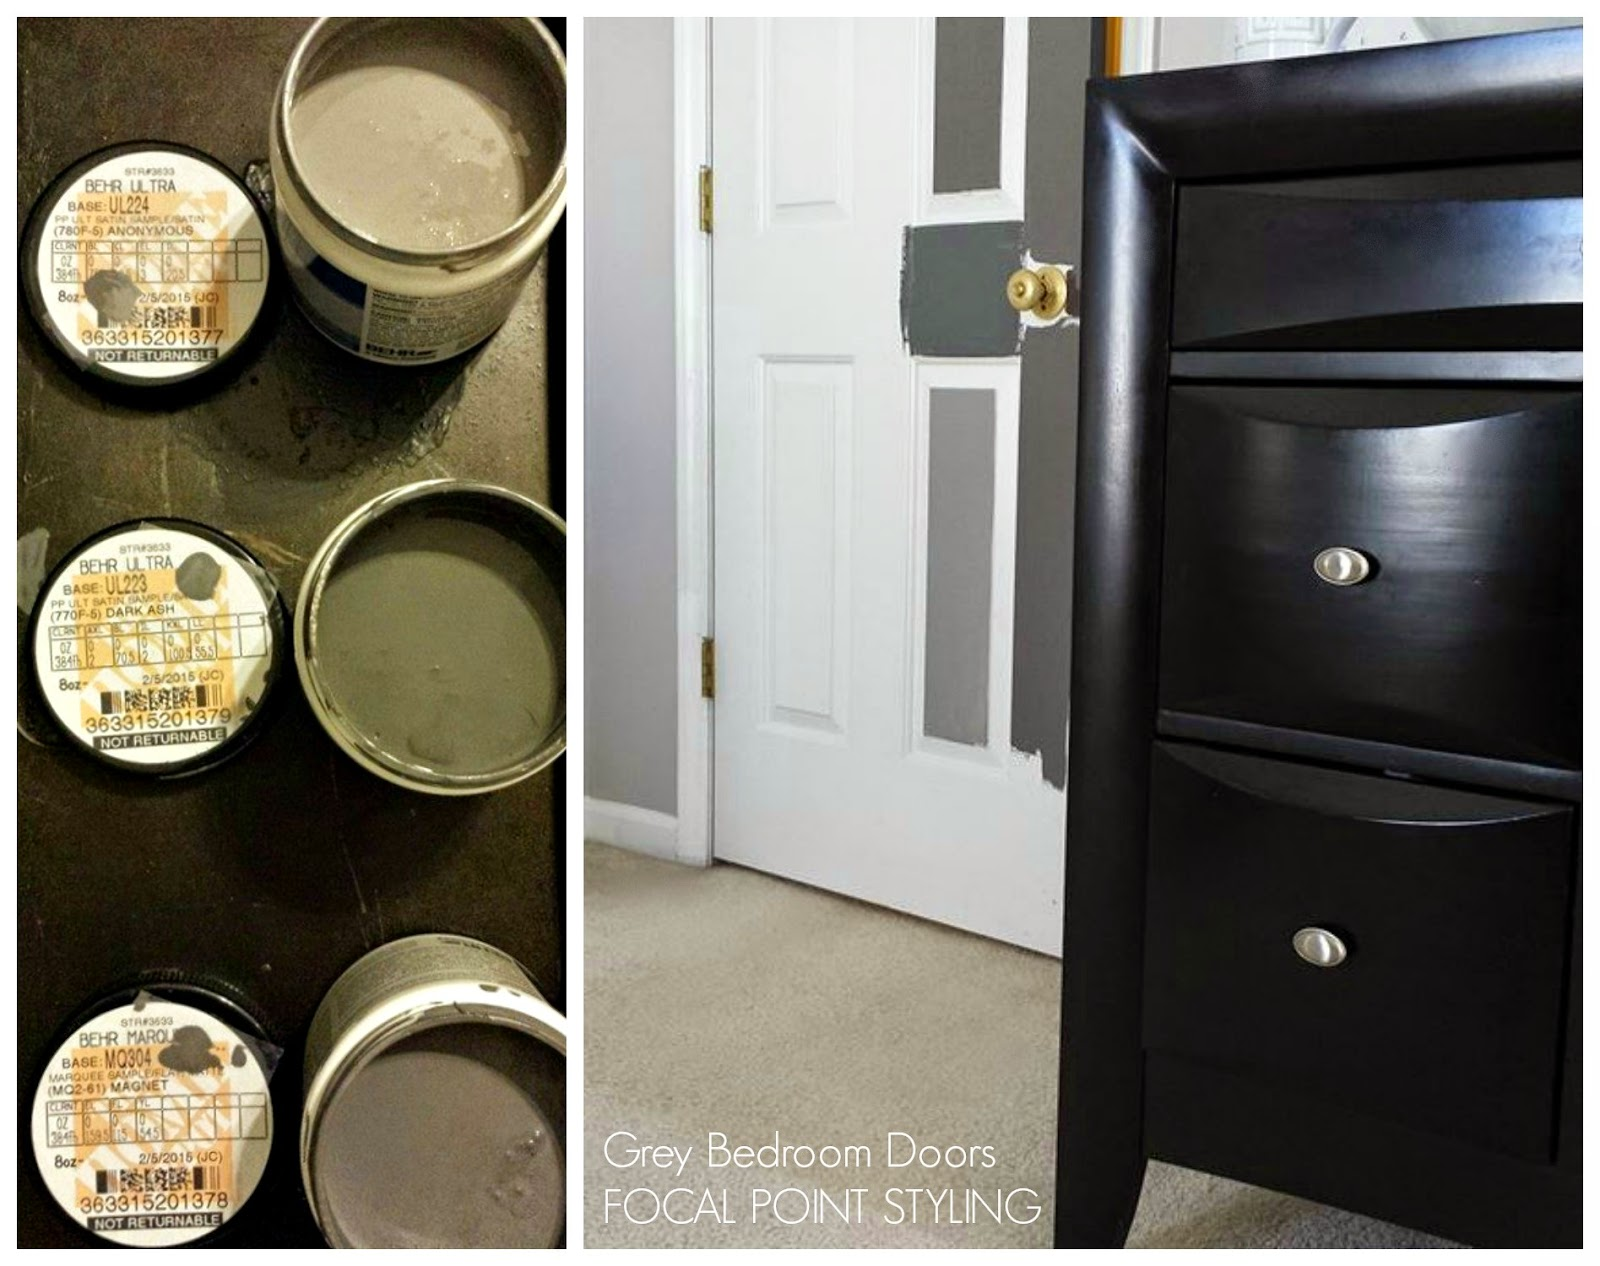 Magnet Bedroom Furniture Focal Point Styling Weekend Decorating Splurge Save On The